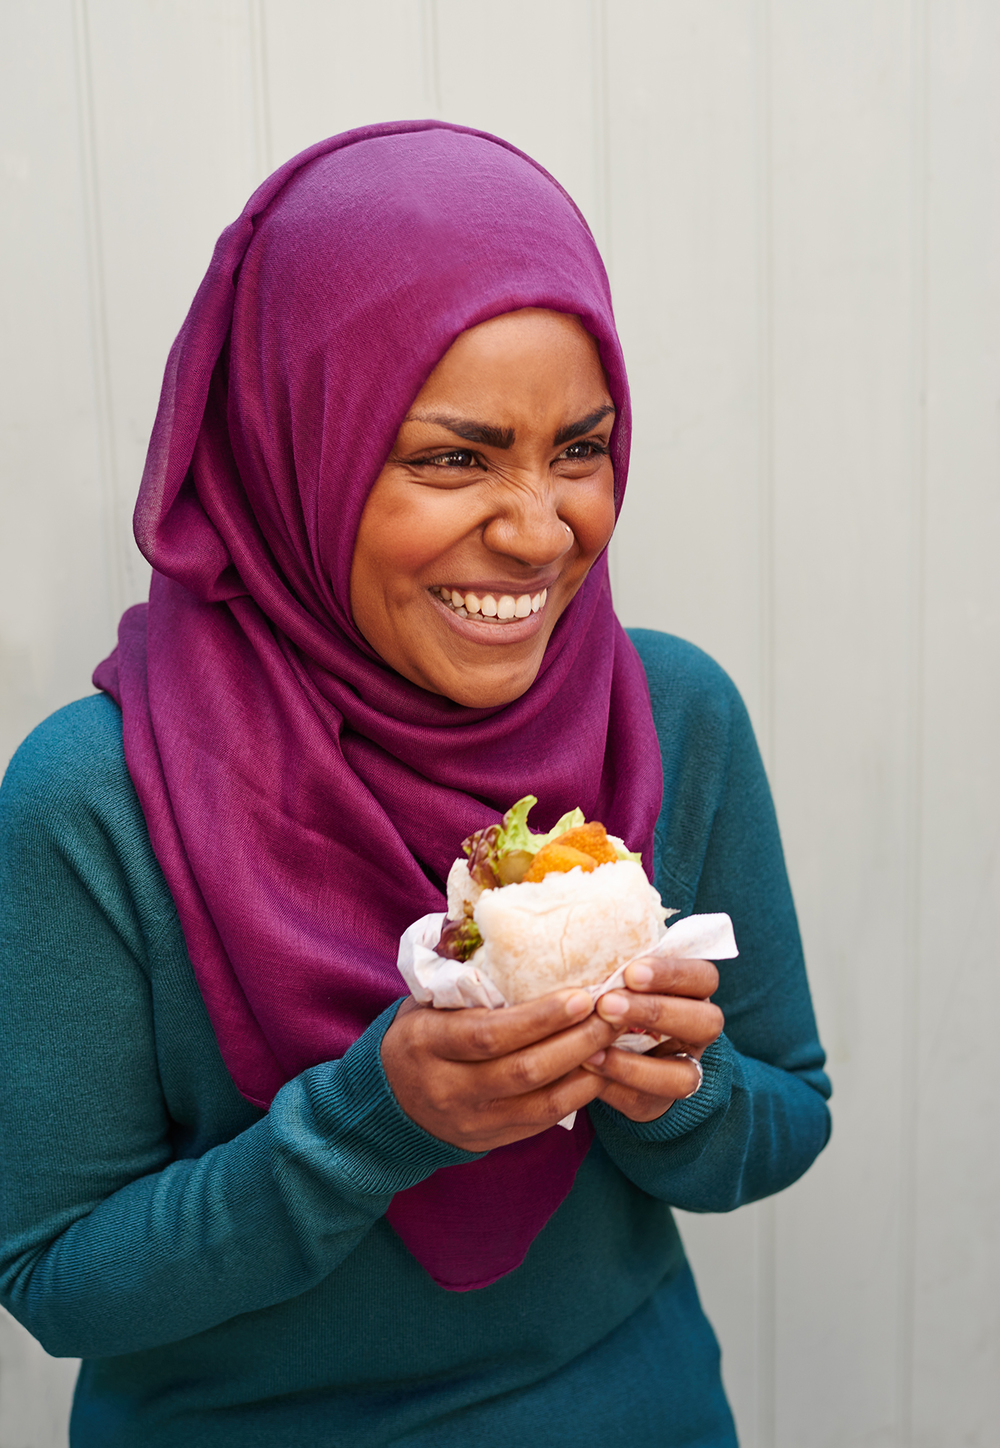 portrait of Great British Bake Off Winner Nadiya Hussain